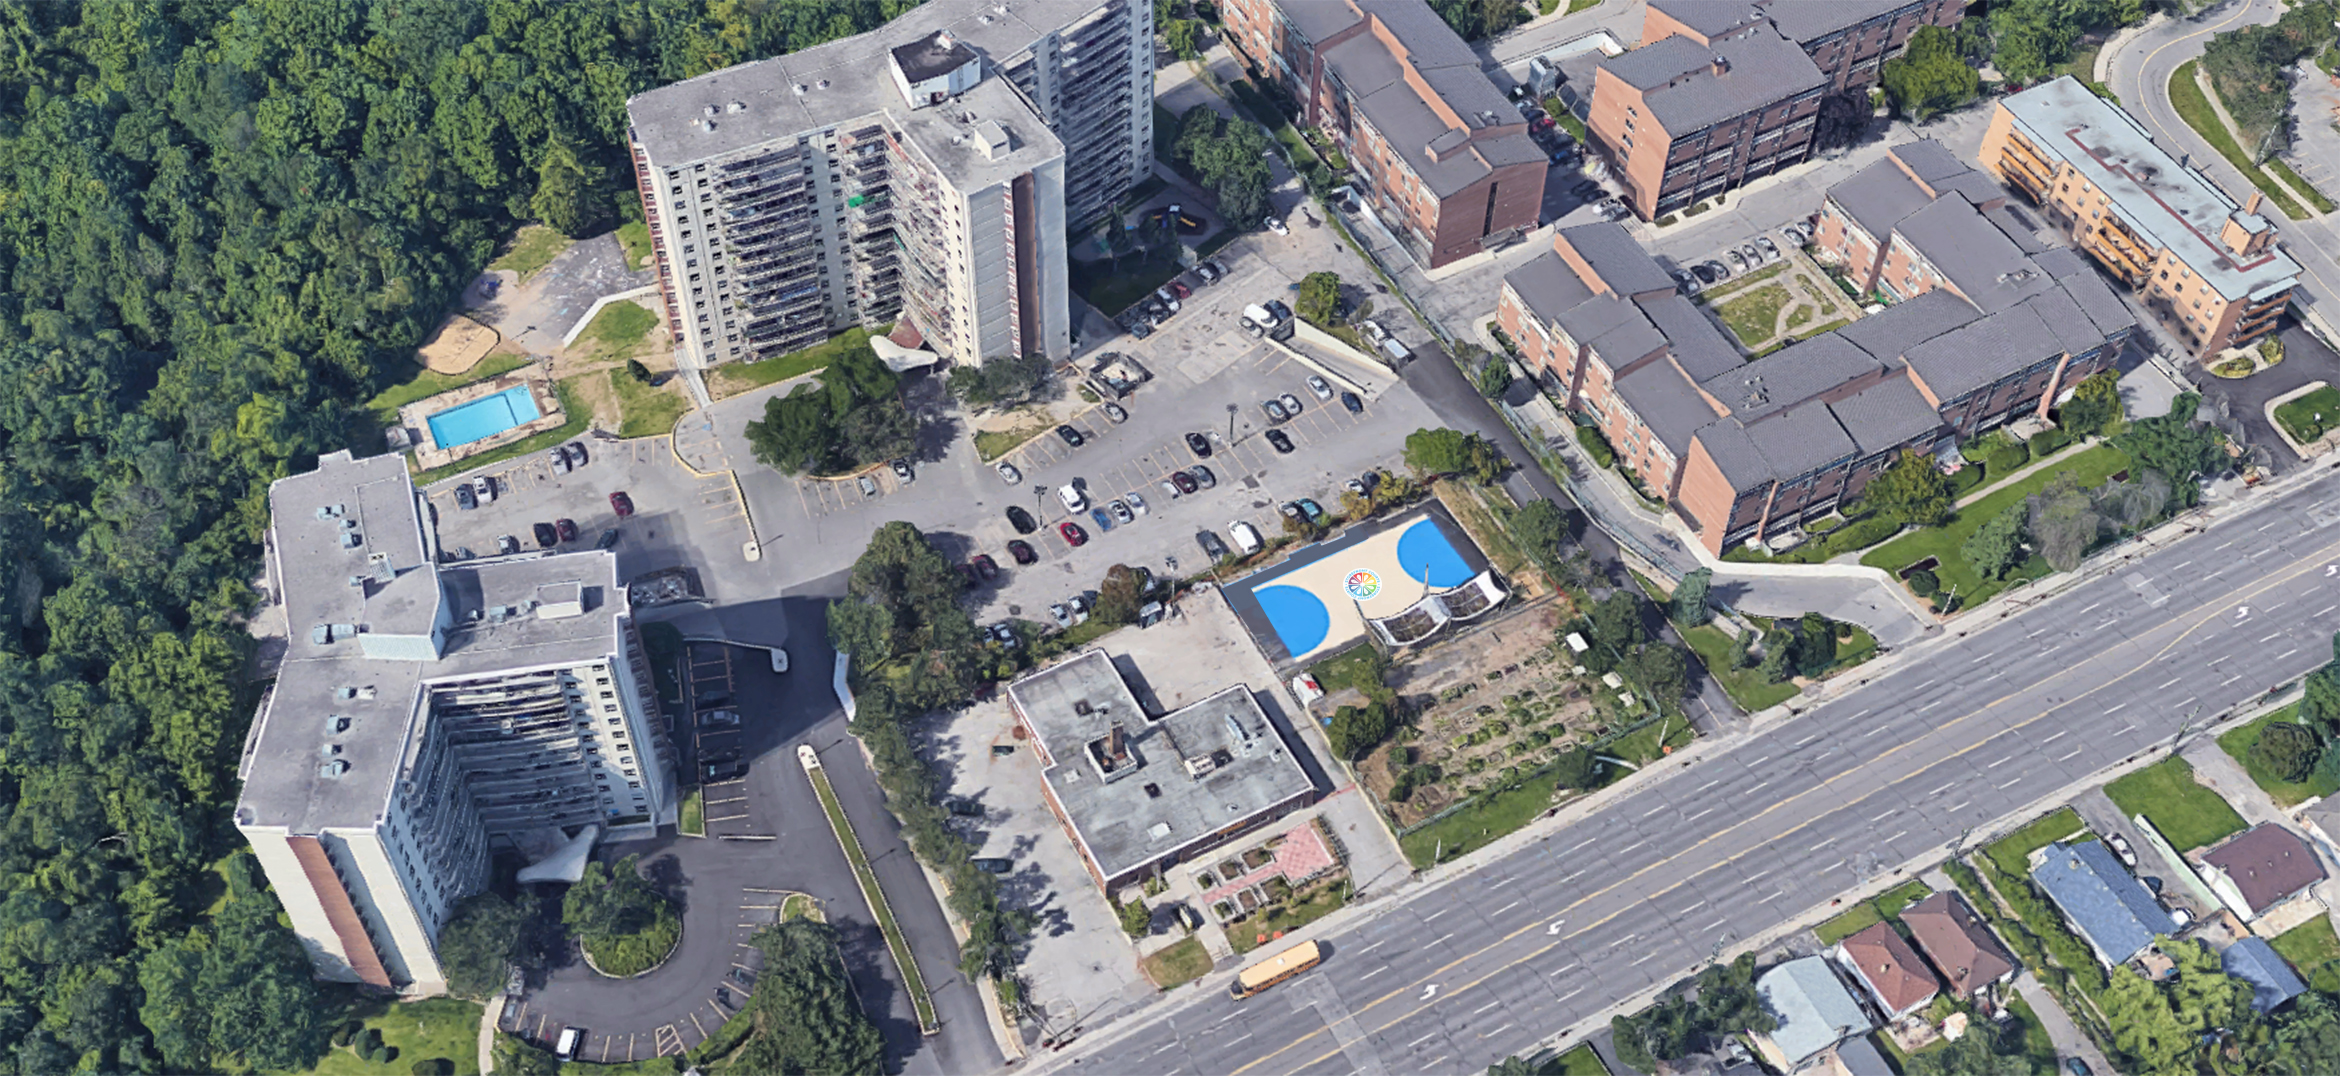 Painting progress shot of the East Scarborough Storefront Courts taken from Google Satellite.